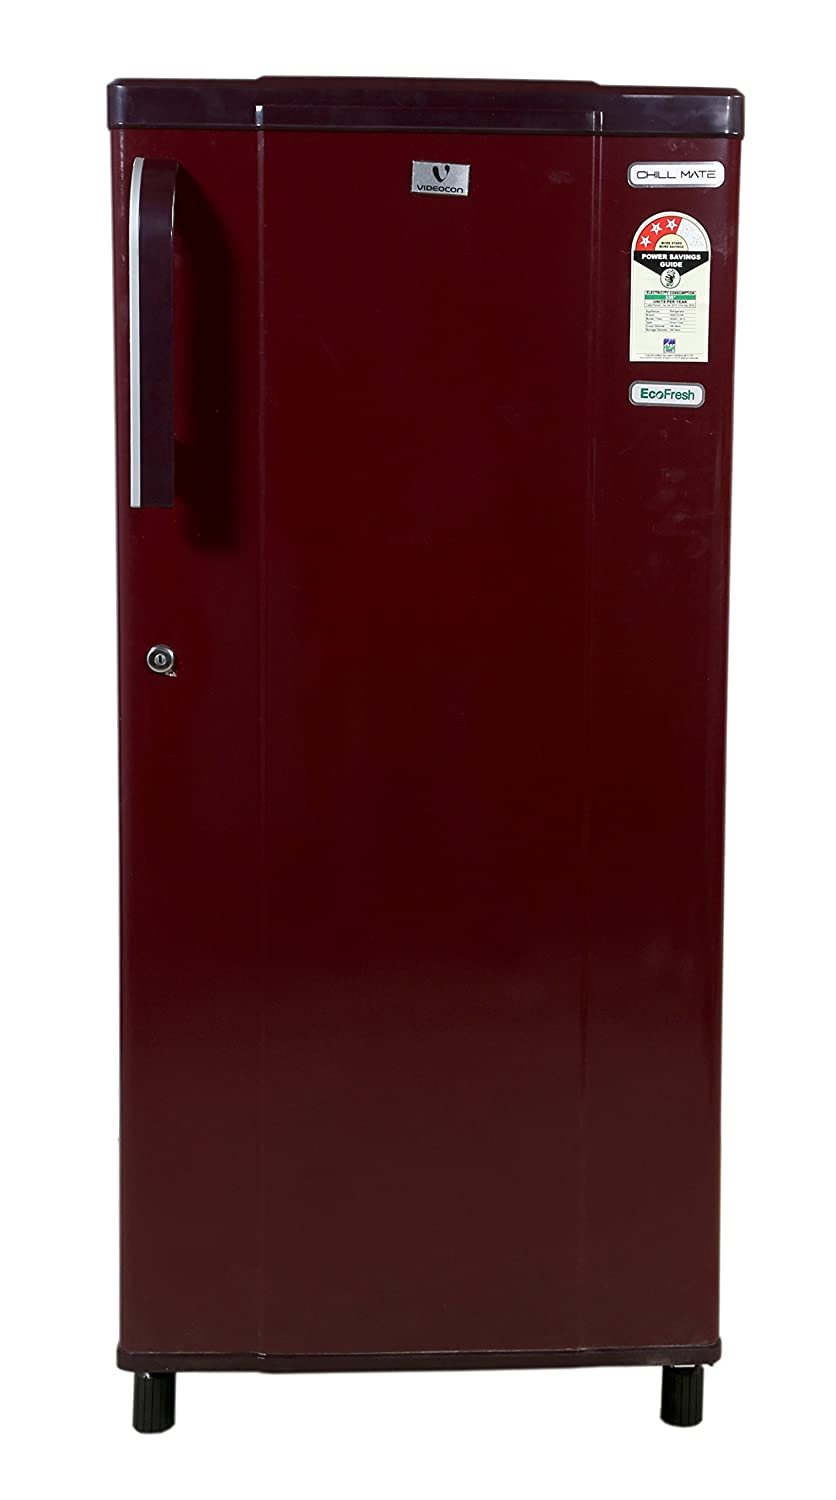 Videocon 190 L 3 Star Direct-Cool Single Door Refrigerator (Amazon)